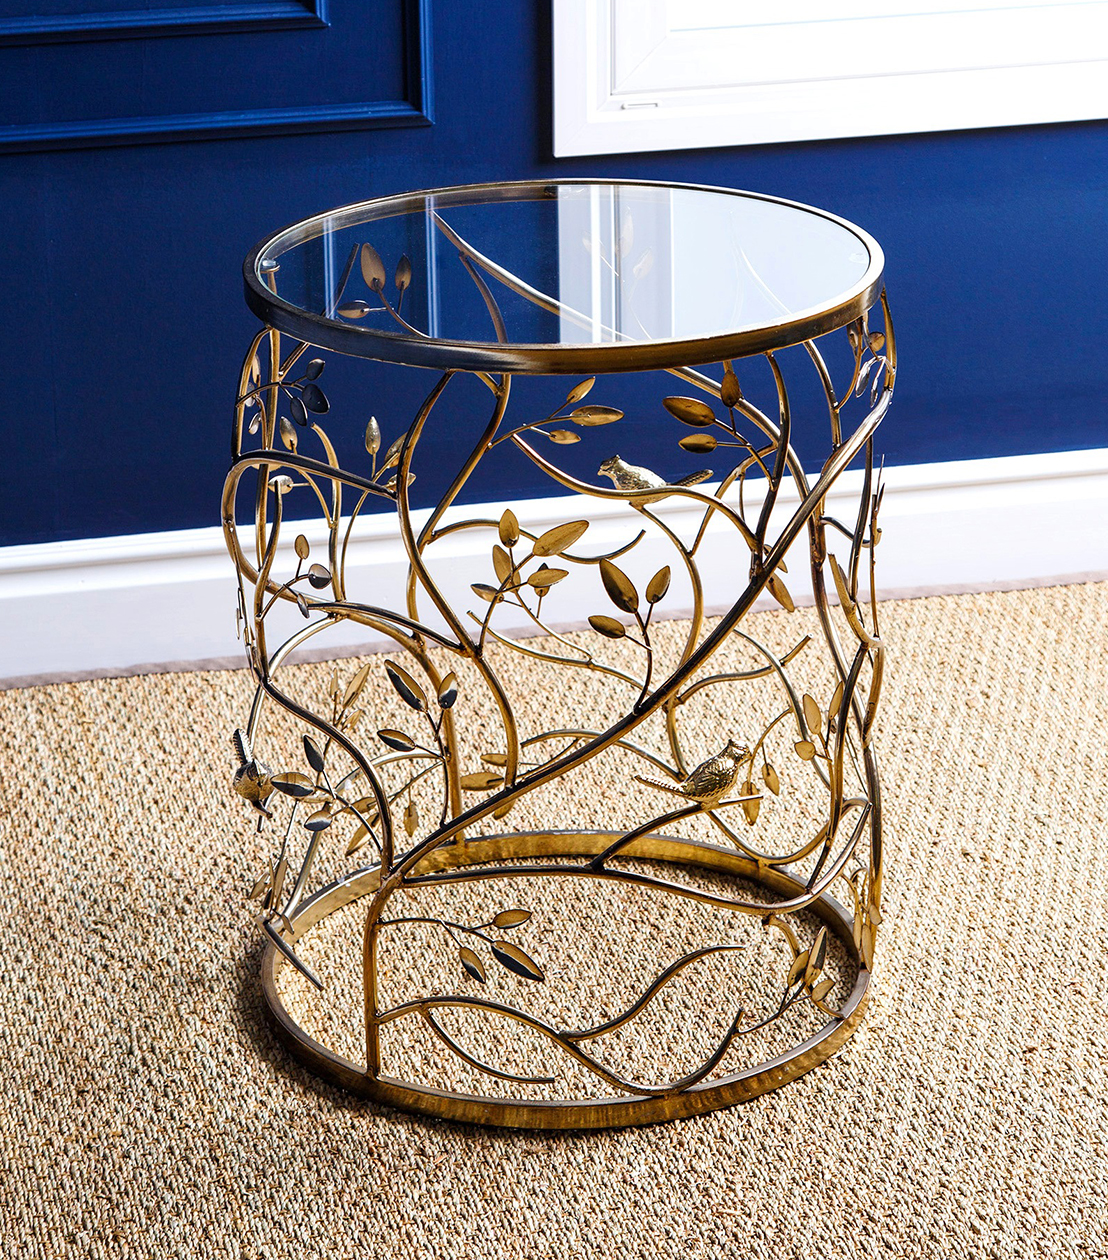 accent tables venetian round glass end table single wine rack inch nightstand wood metal coffee set light oak side steel and narrow console with shelves kitchen chairs college